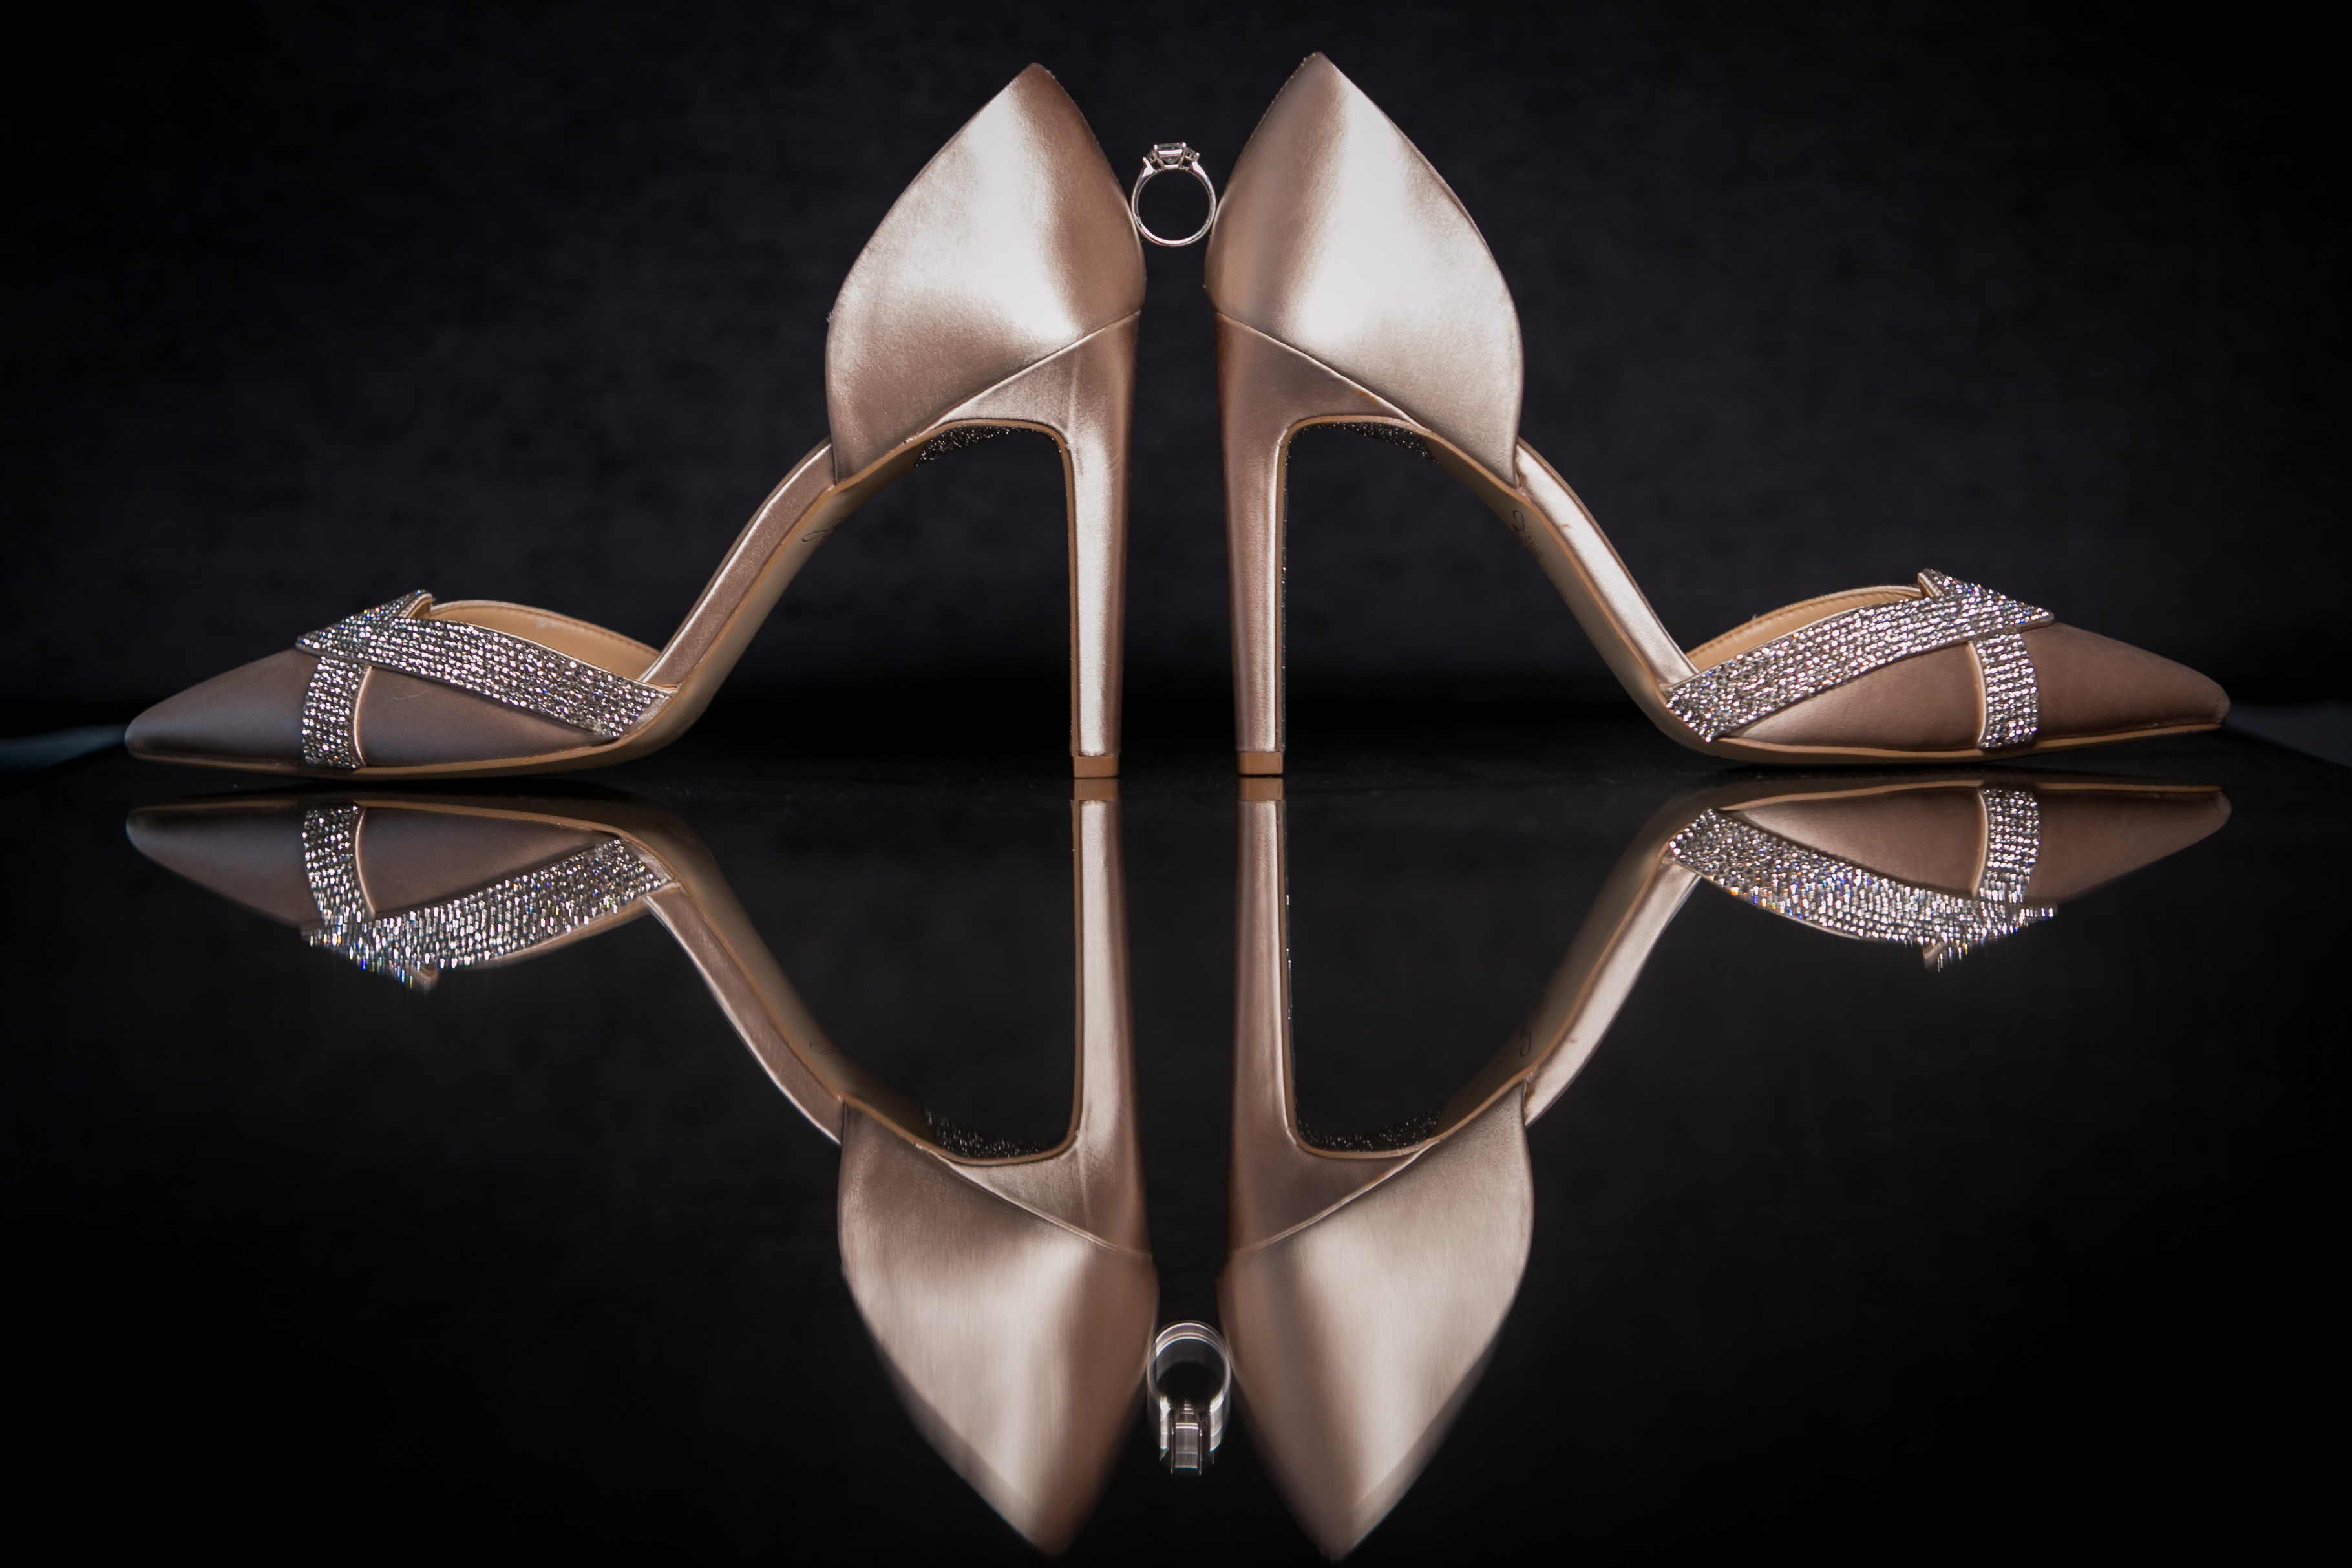 Brides Shoes with Engagement Ring